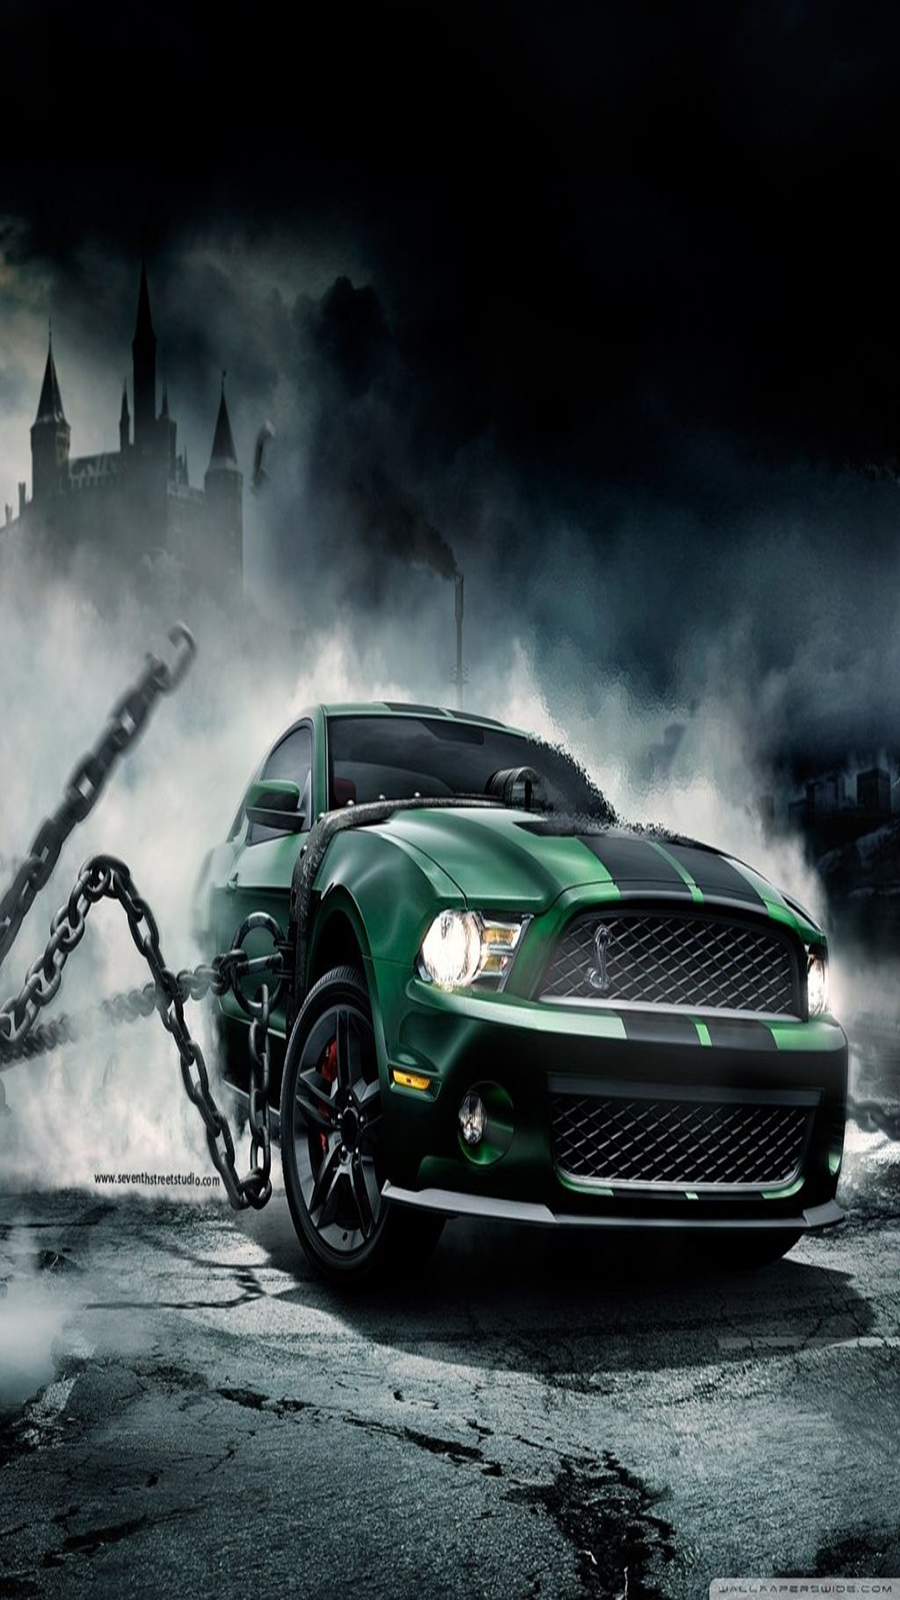 50-FORD-MUSTANG-HD-WALLPAPERS